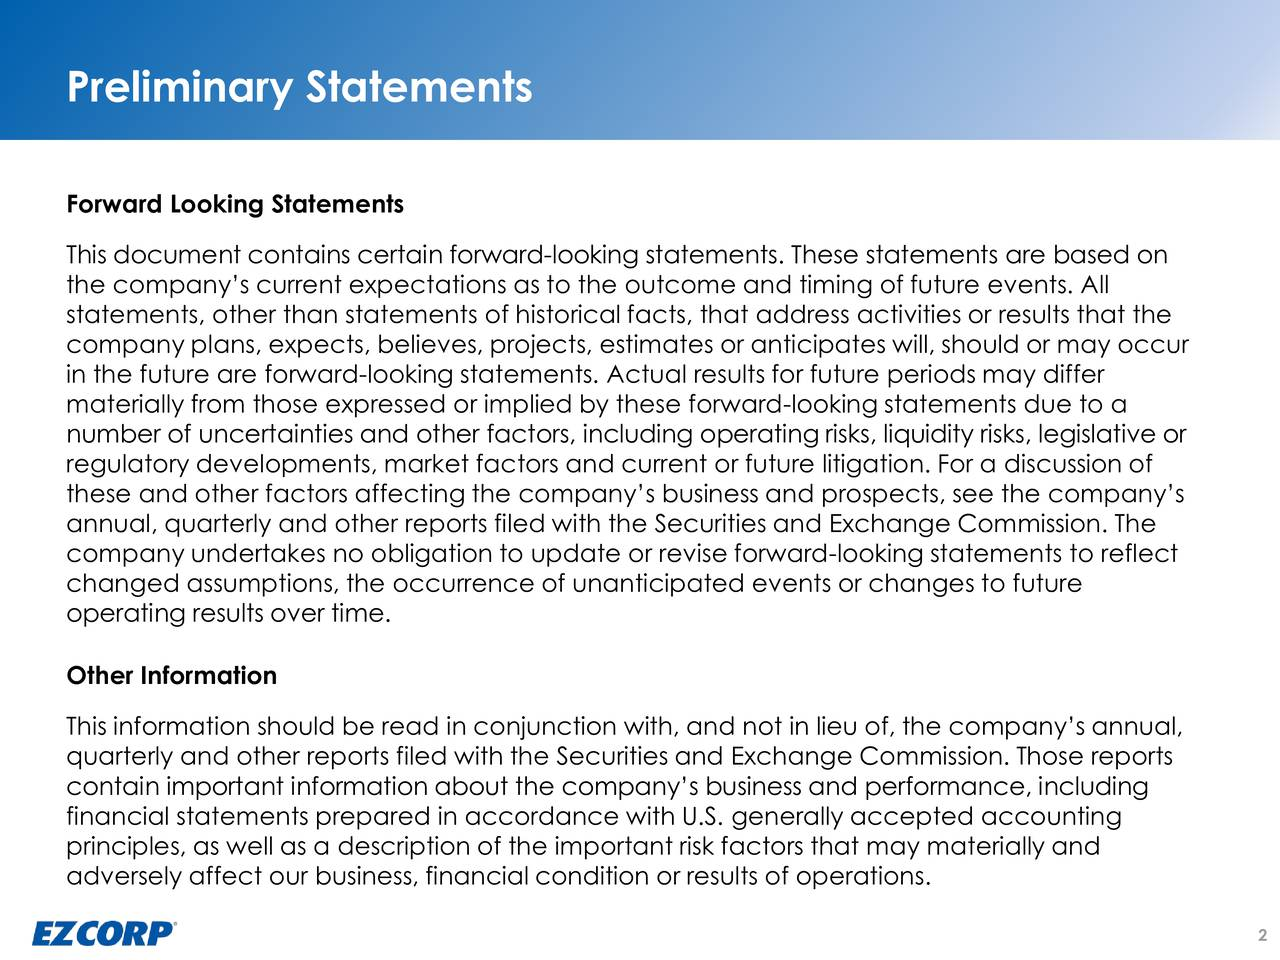 Forward Looking Statements This document contains certain forward-looking statements. These statements are based on the companys current expectations as to the outcome and timing of future events. All statements, other than statements of historical facts, that address activities or results that the company plans, expects, believes, projects, estimates or anticipates will, should or may occur in the future are forward-looking statements. Actual results for future periods may differ materially from those expressed or implied by these forward-looking statements due to a number of uncertainties and other factors, including operating risks, liquidity risks, legislative or regulatory developments, market factors and current or future litigation. For a discussion of these and other factors affecting the companys business and prospects, see the companys annual, quarterly and other reports filed with the Securities and Exchange Commission. The company undertakes no obligation to update or revise forward-looking statements to reflect changed assumptions, the occurrence of unanticipated events or changes to future operating results over time. Other Information This information should be read in conjunction with, and not in lieu of, the companys annual, quarterly and other reports filed with the Securities and Exchange Commission. Those reports contain important information about the companys business and performance, including financial statements prepared in accordance with U.S. generally accepted accounting principles, as well as a description of the important risk factors that may materially and adversely affect our business, financial condition or results of operations. 2